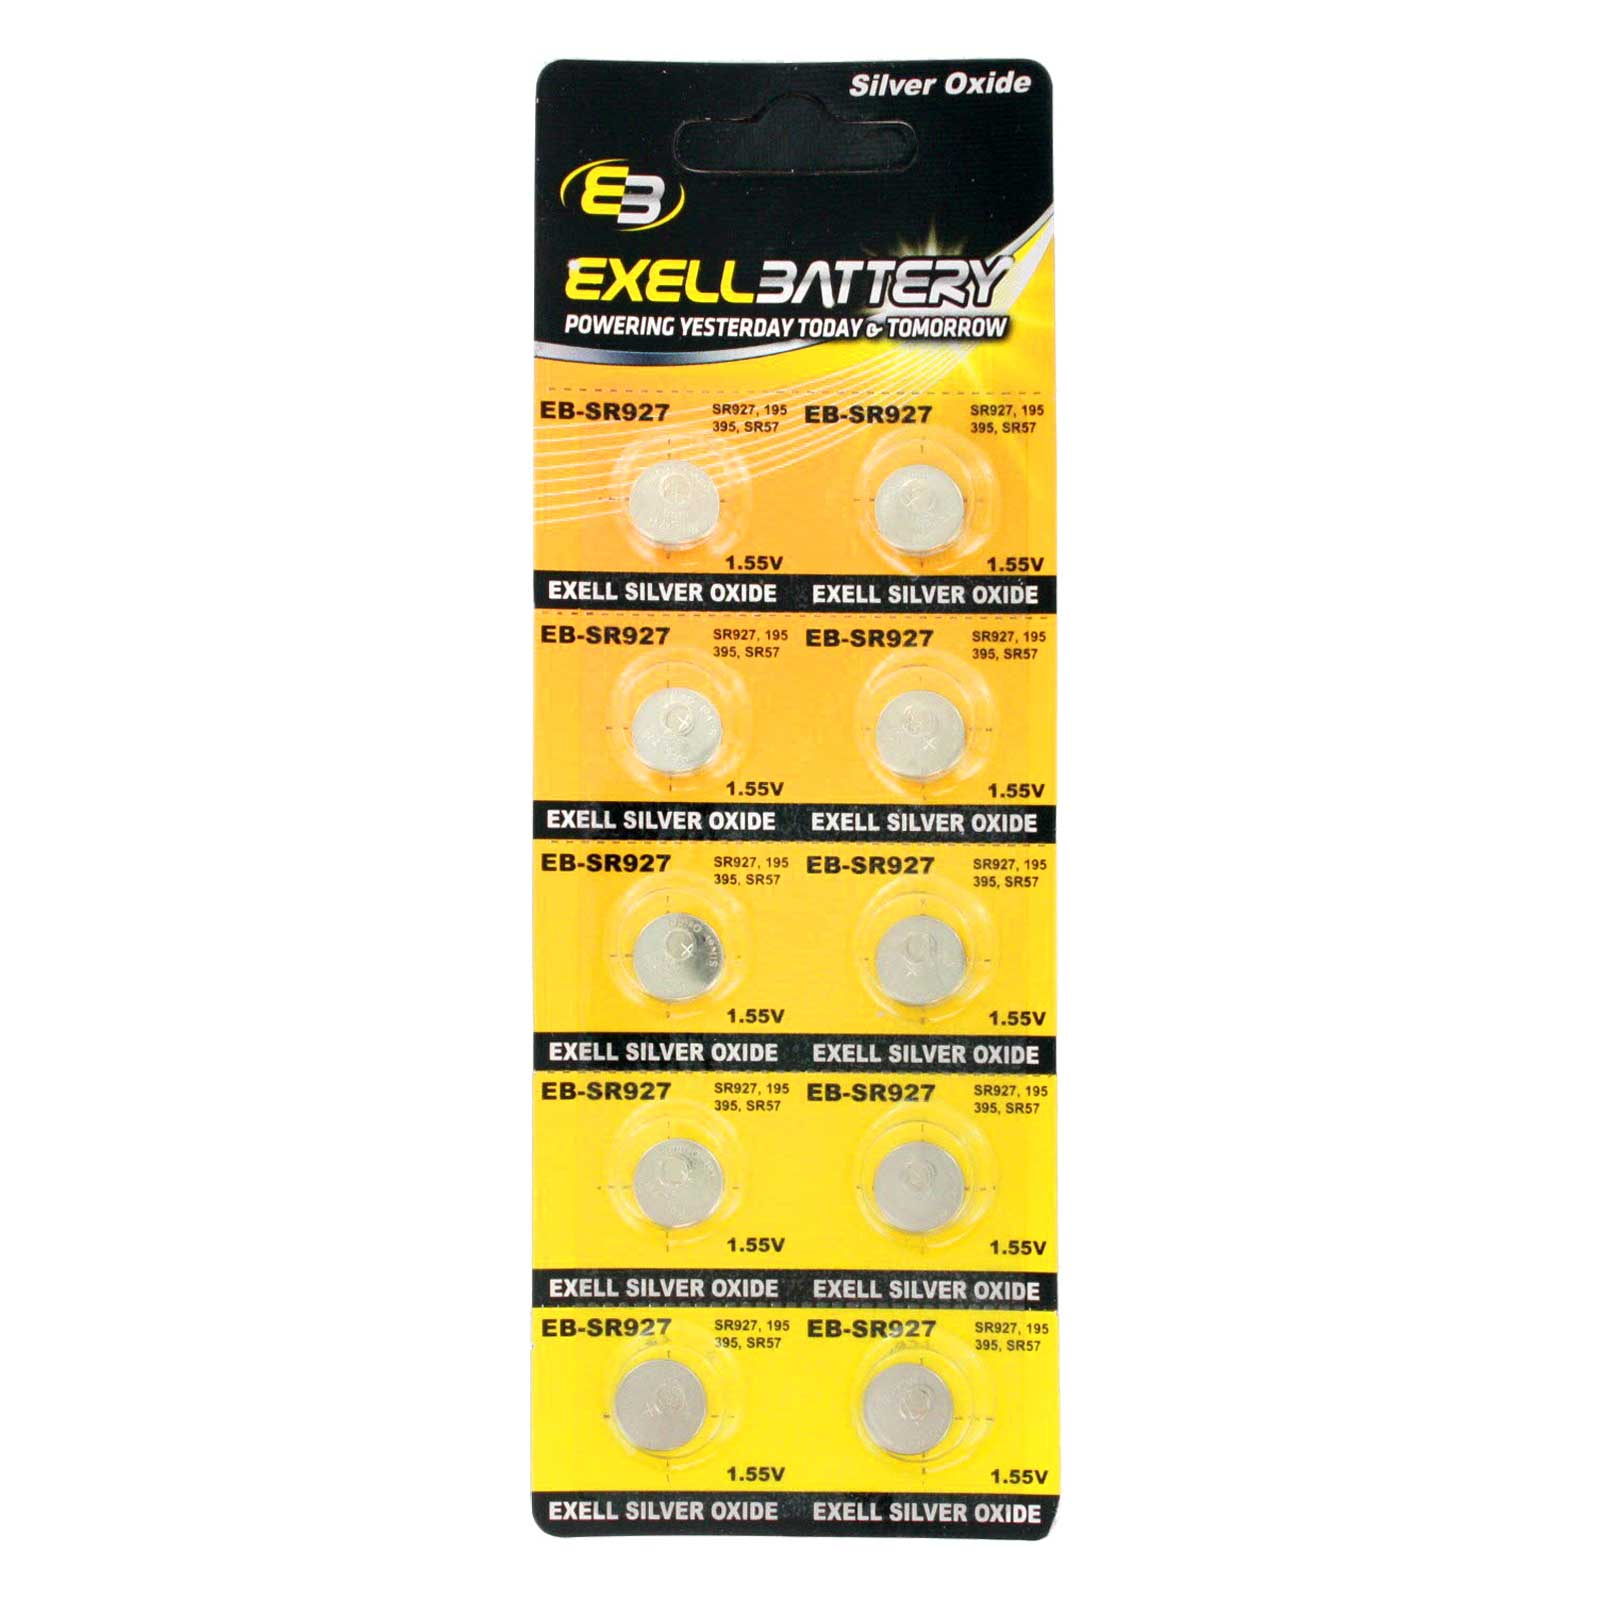 10pk exell eb sr927 silver oxide 15v watch battery replaces 395399 10pk exell eb sr927 silver oxide 15v watch battery replaces 395399 fandeluxe Choice Image